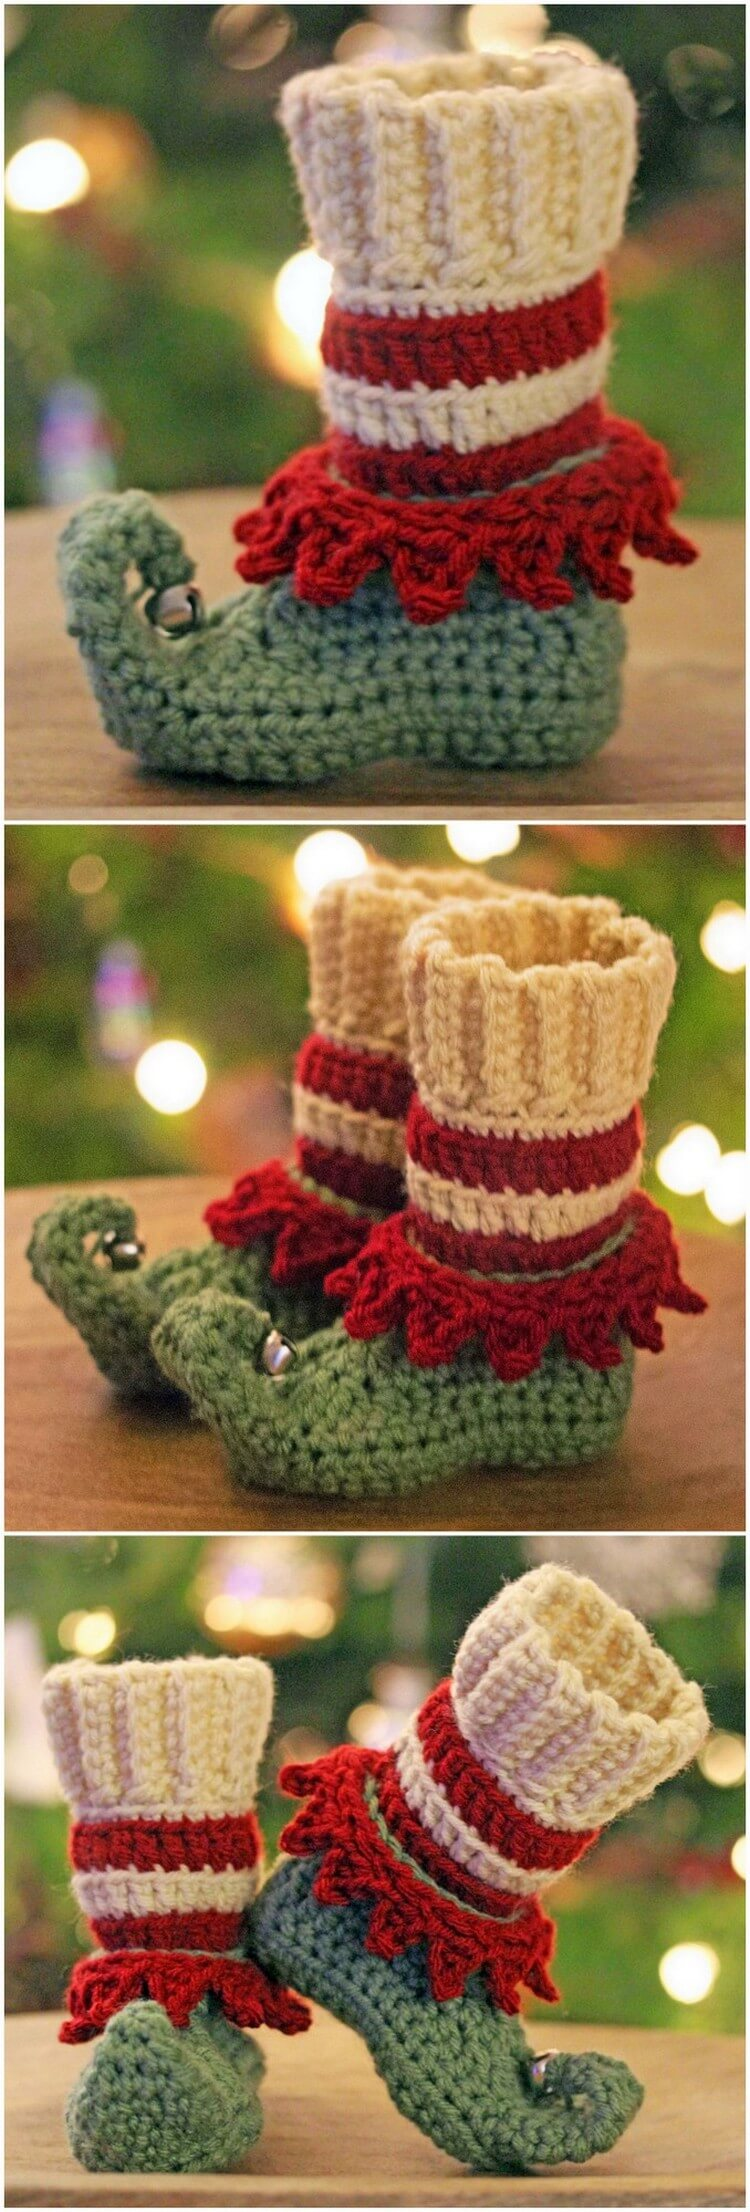 Creative Crochet Pattern (4)